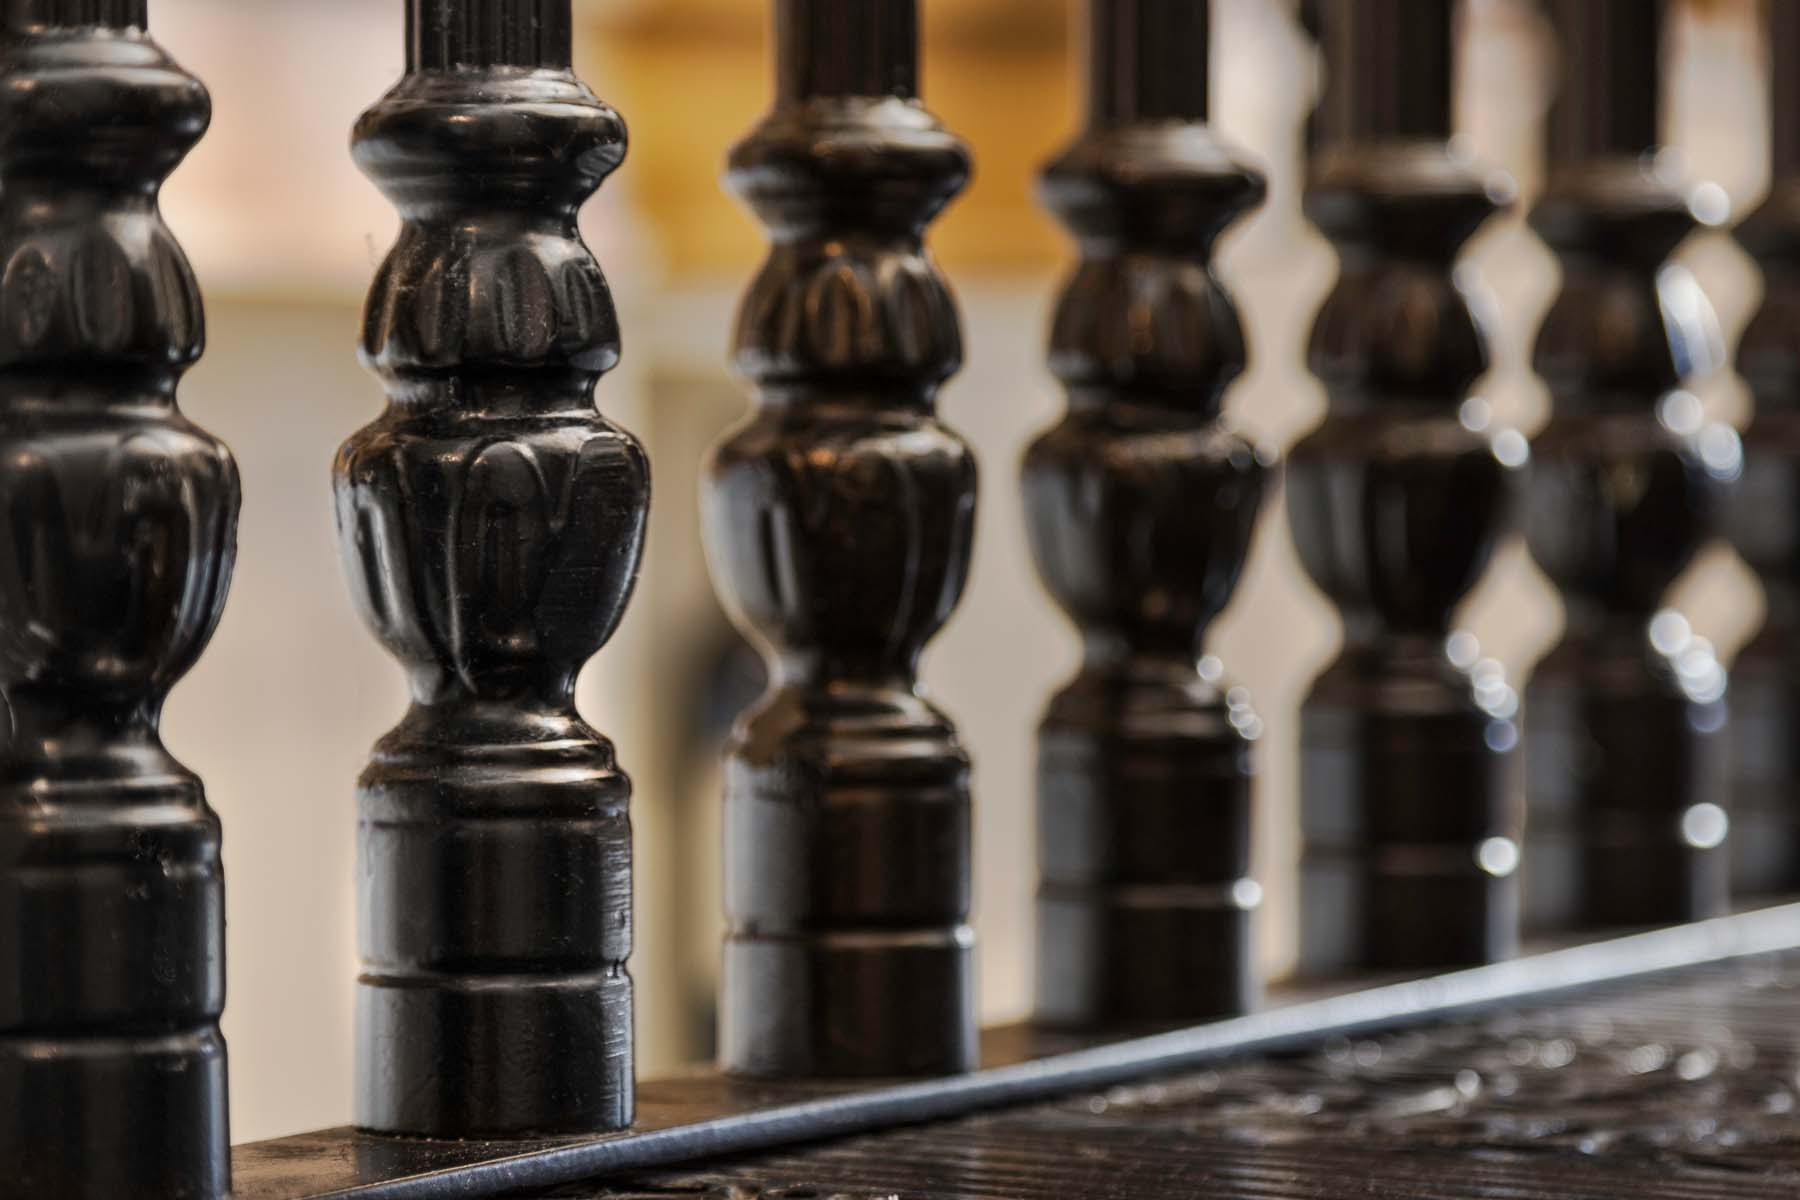 Cast spindles